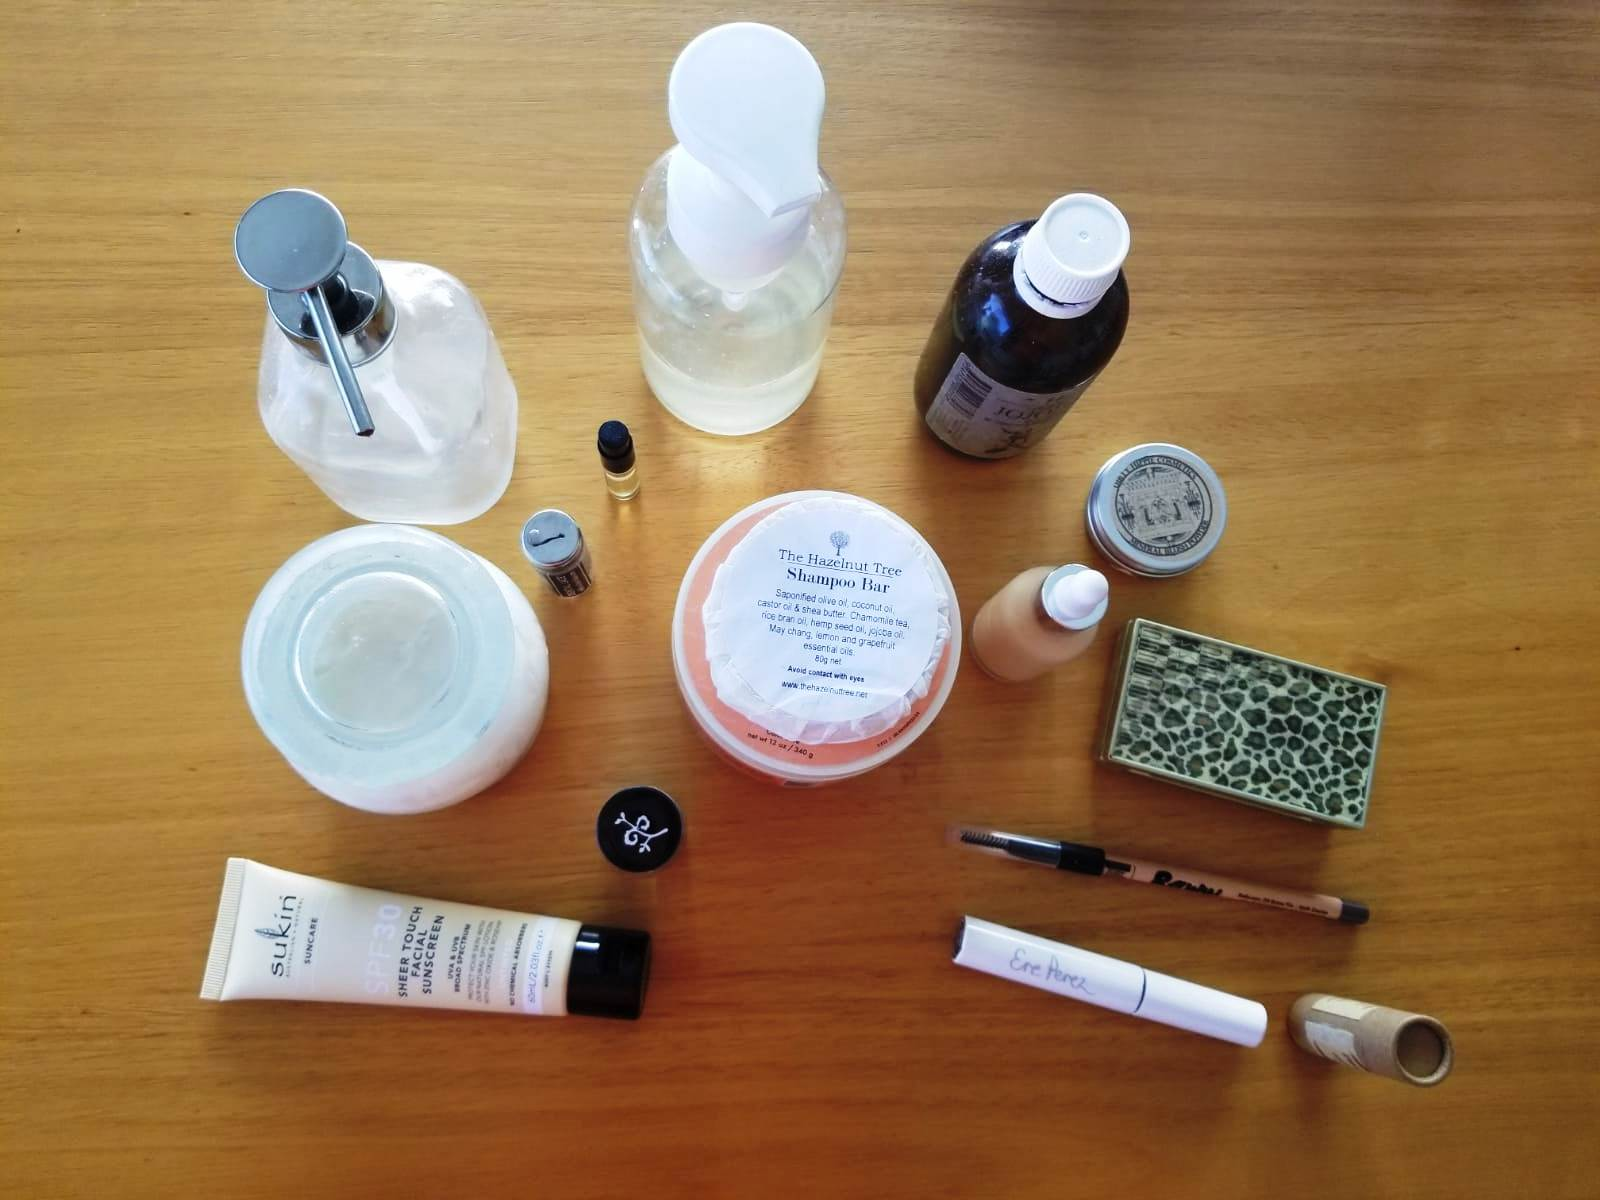 How many personal care products/cosmetics do you use?